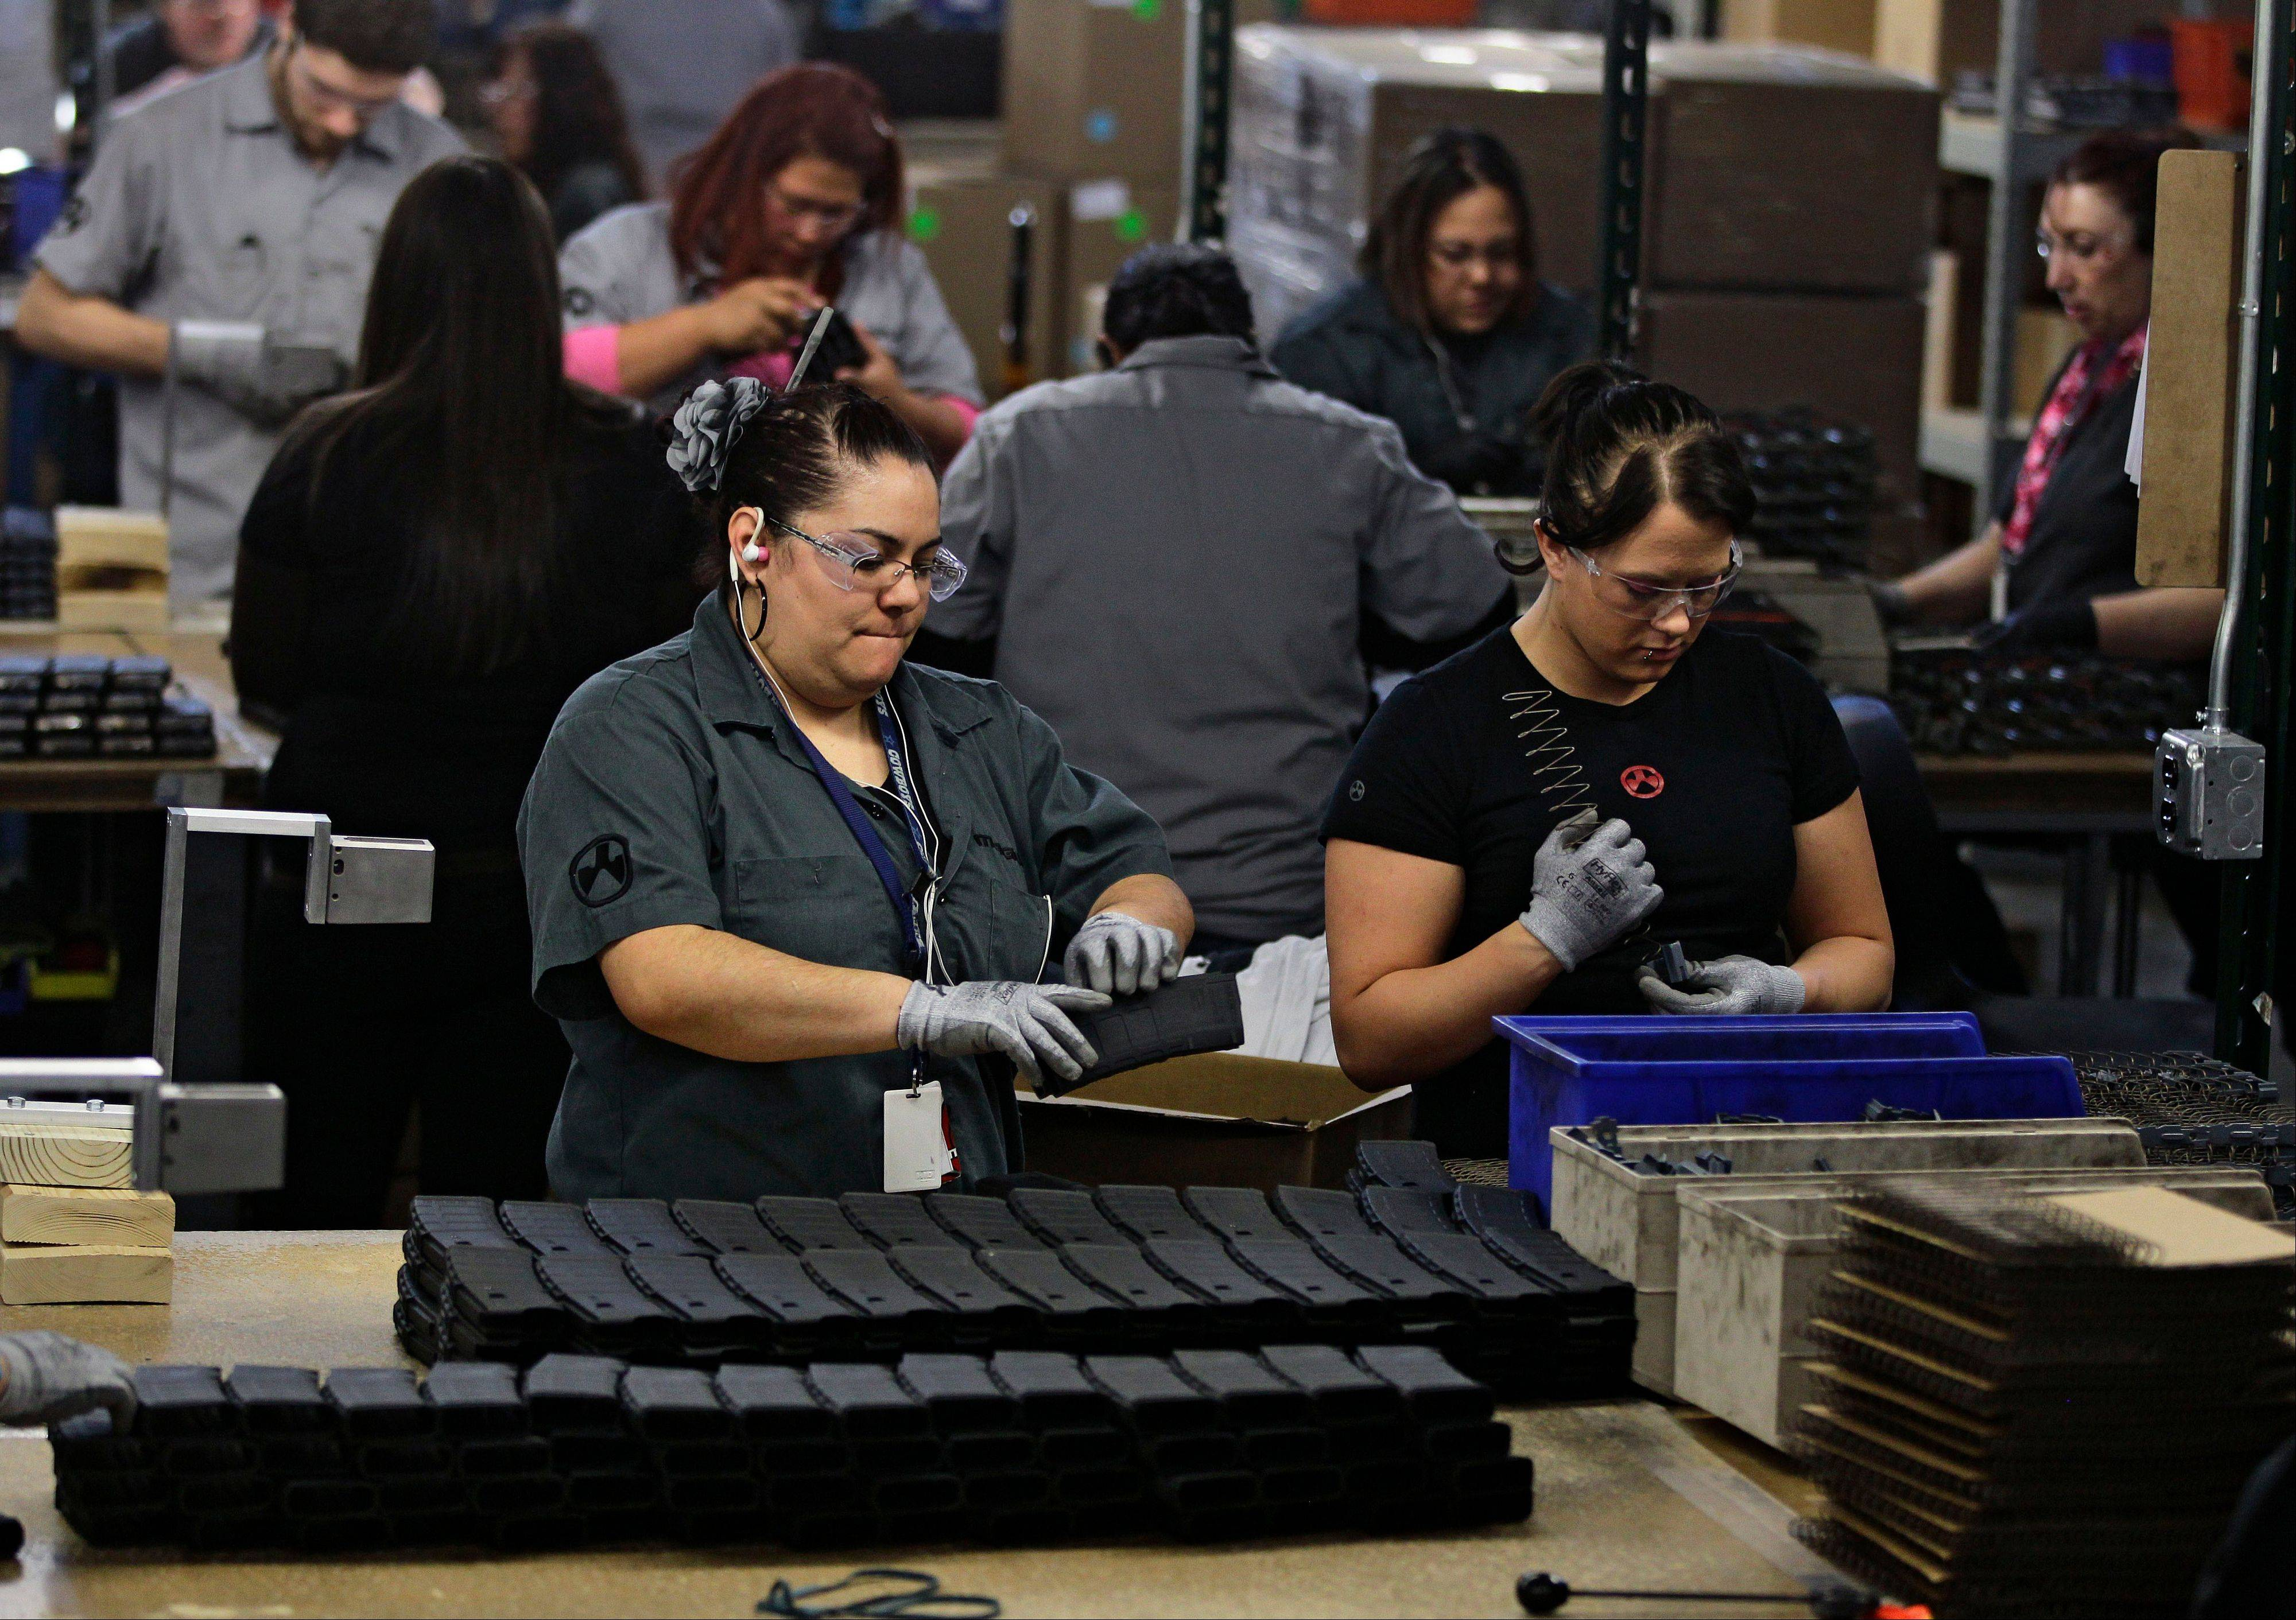 Workers assemble 30-round capacity ammunition magazines Friday for high-velocity rifles, inside the Magpul Industries plant in Erie, Colo.